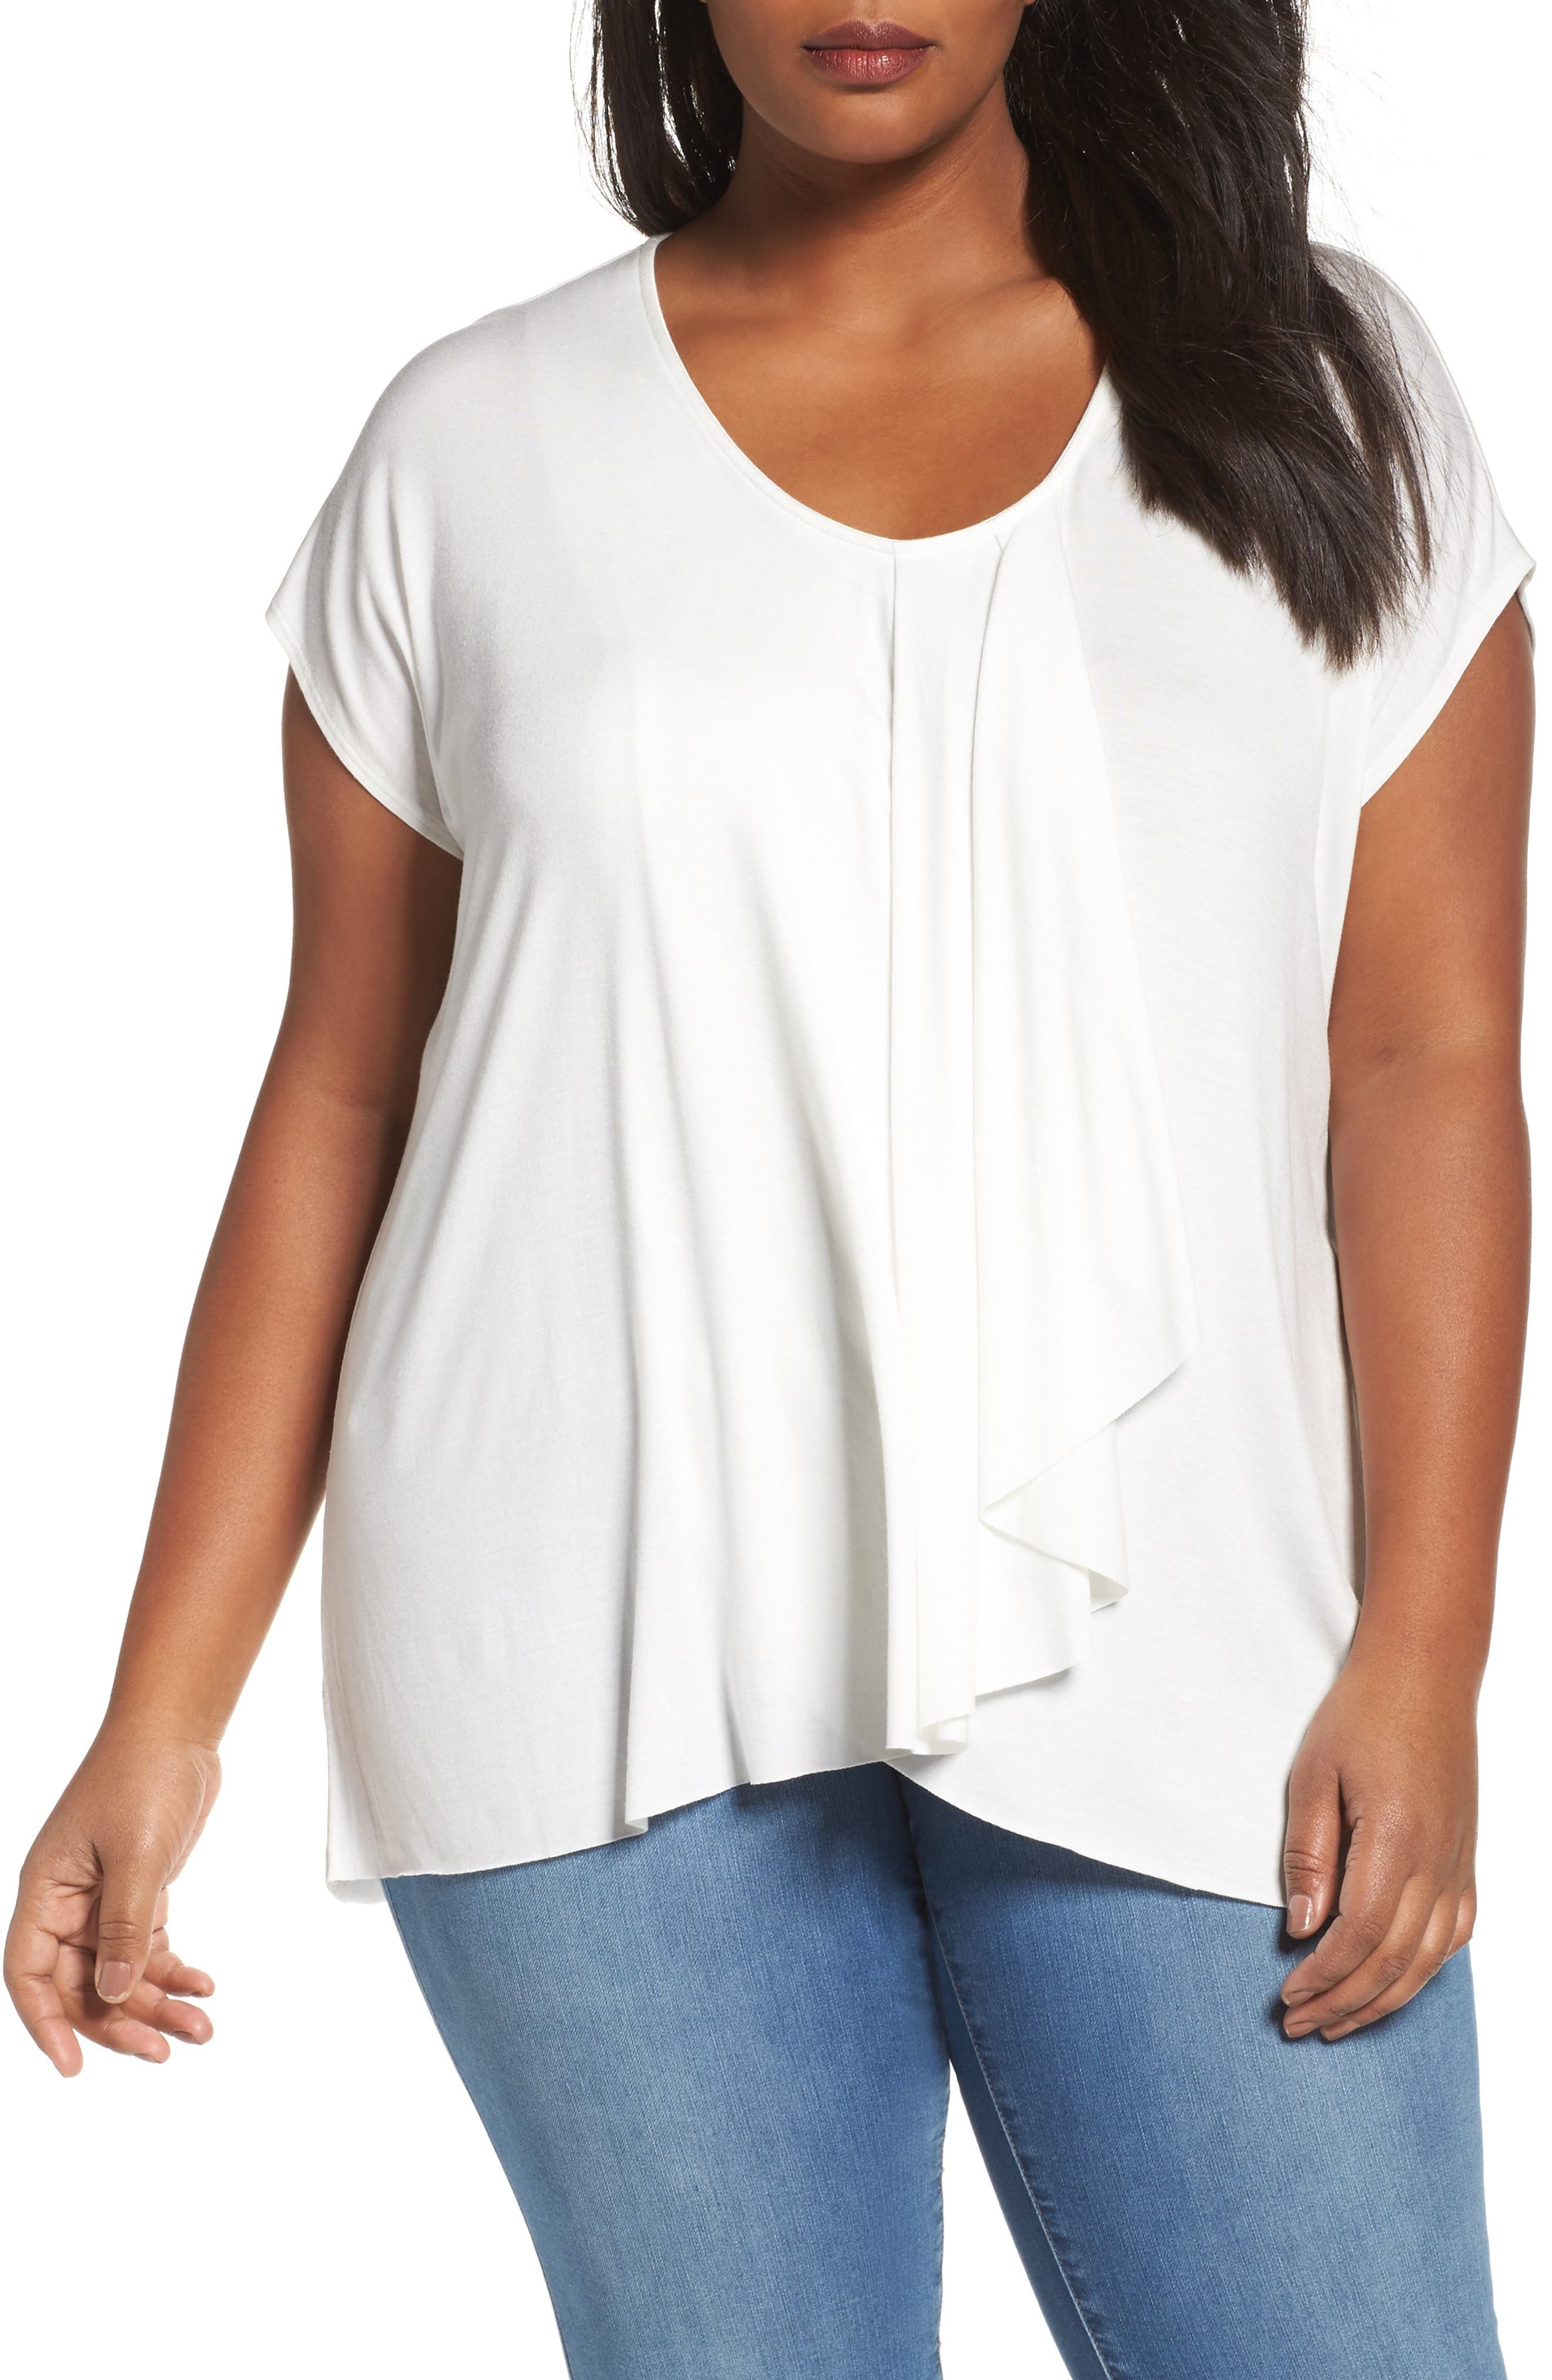 Alternate Image 1 Selected - Sejour Pleat Front Tee (Plus Size)